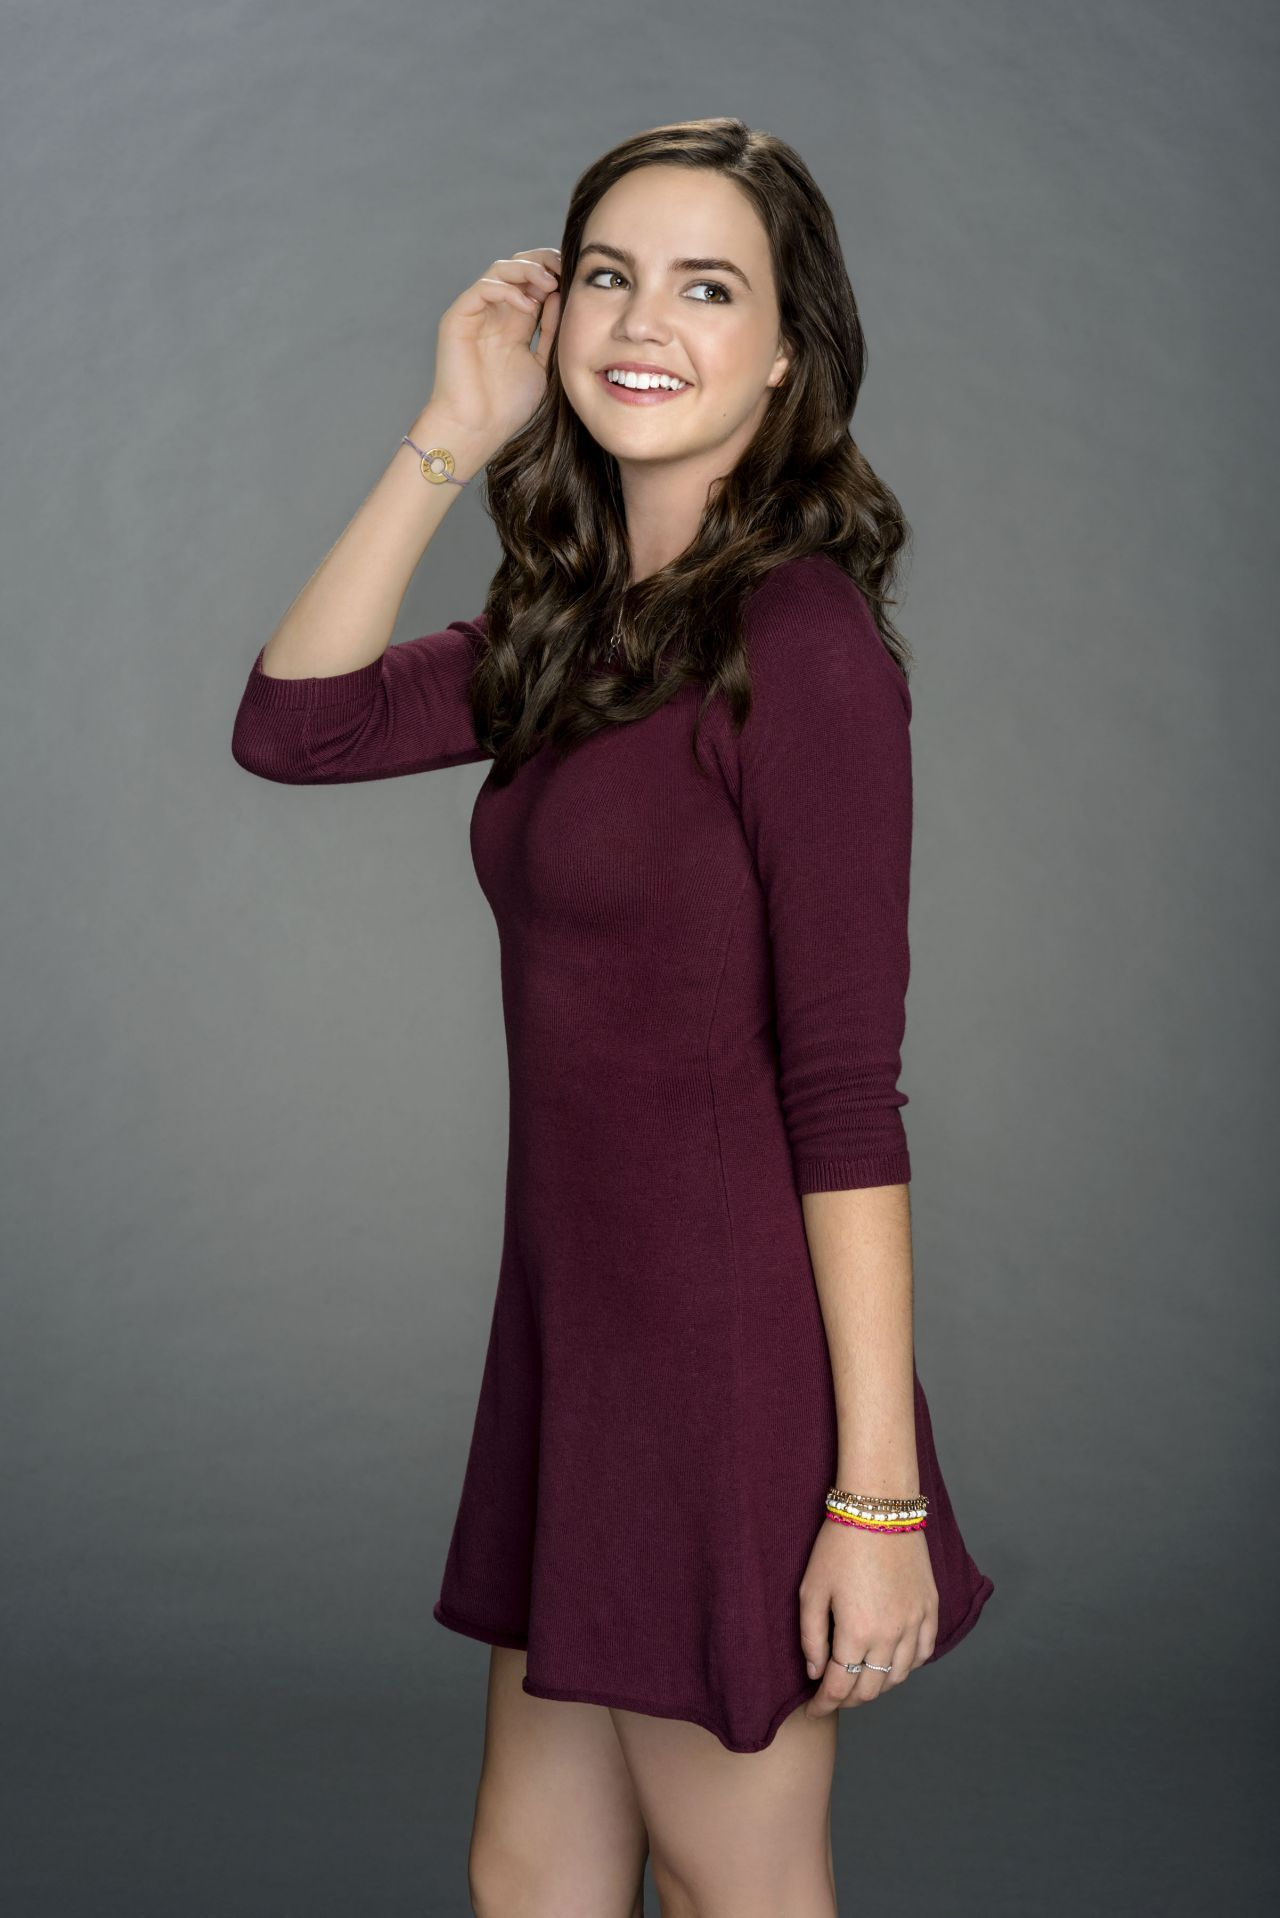 bailee madison zimbiobailee madison and alex lange, bailee madison gif, bailee madison wikipedia, bailee madison 2017, bailee madison hq, bailee madison fan, bailee madison daily, bailee madison birthday, bailee madison facebook, bailee madison filmography, bailee madison movies, bailee madison disney, bailee madison fansite, bailee madison in wizards of waverly place, bailee madison bio, bailee madison selfie, bailee madison imdb, bailee madison gif tumblr, bailee madison height weight, bailee madison zimbio